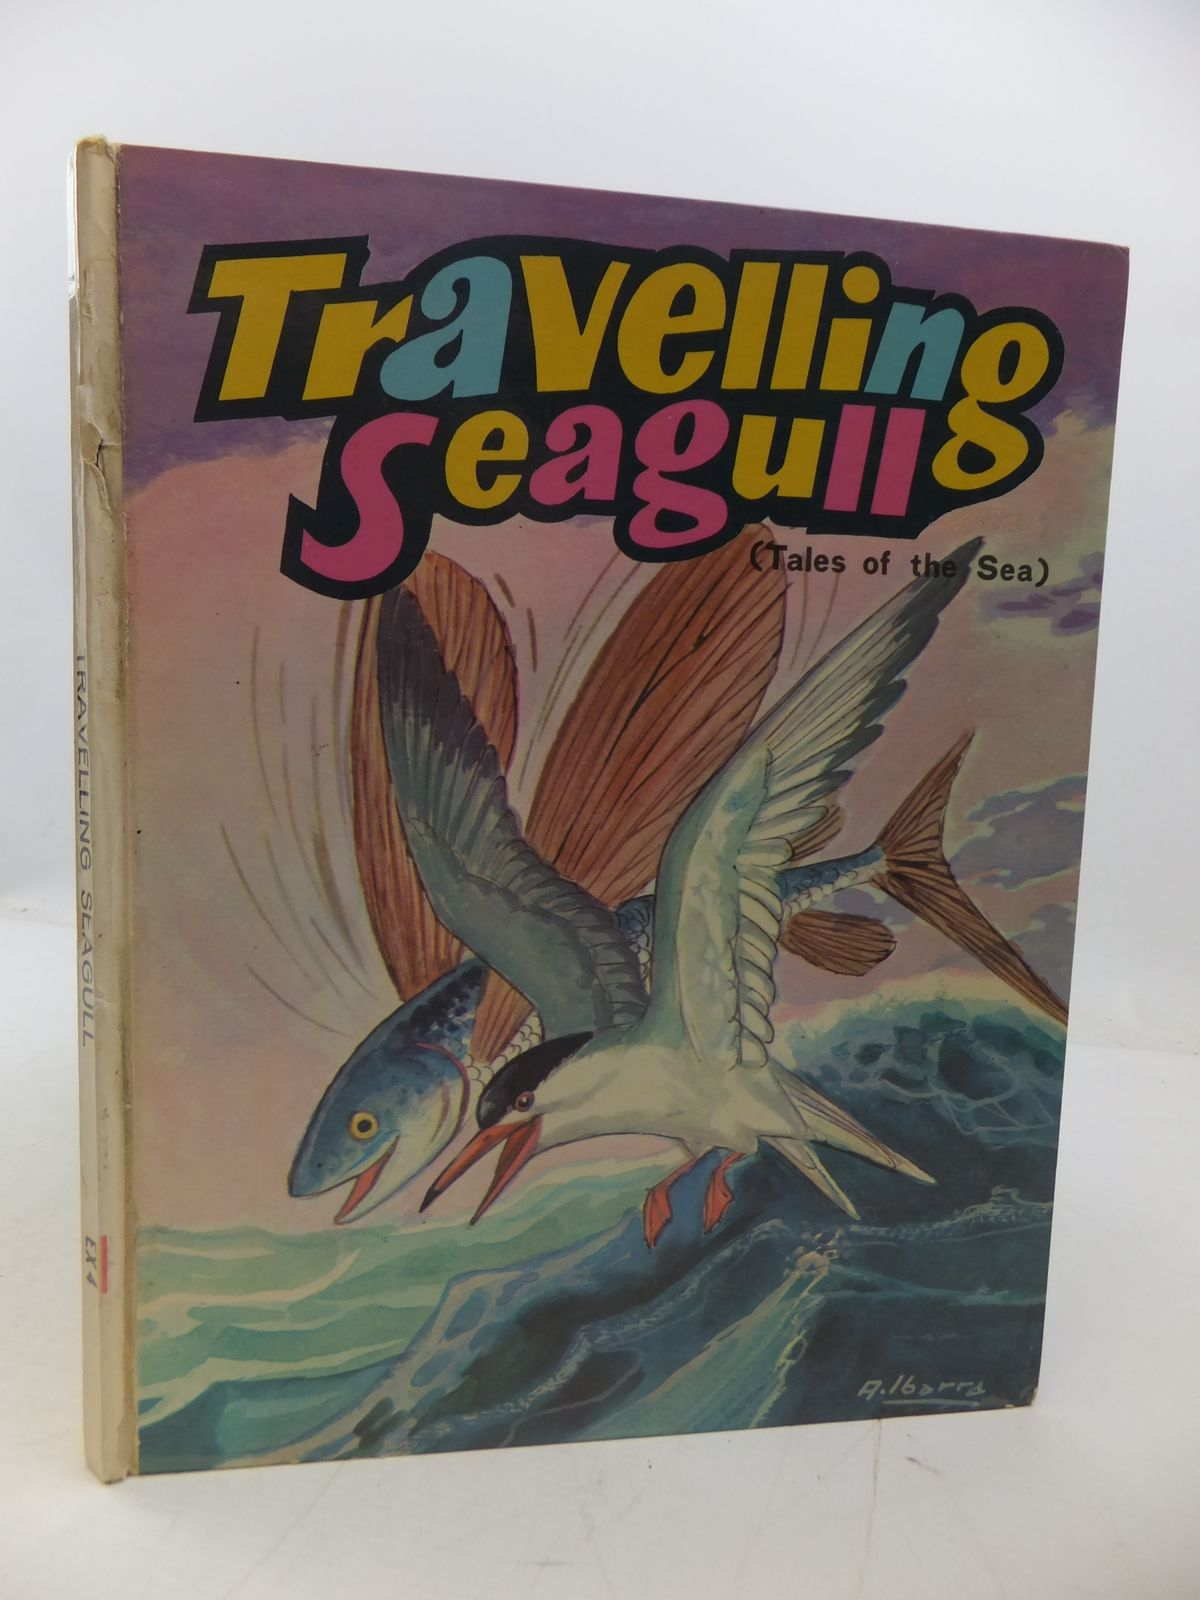 Photo of TRAVELLING SEAGULL published by Murrays Sales & Service Co. (STOCK CODE: 1807901)  for sale by Stella & Rose's Books